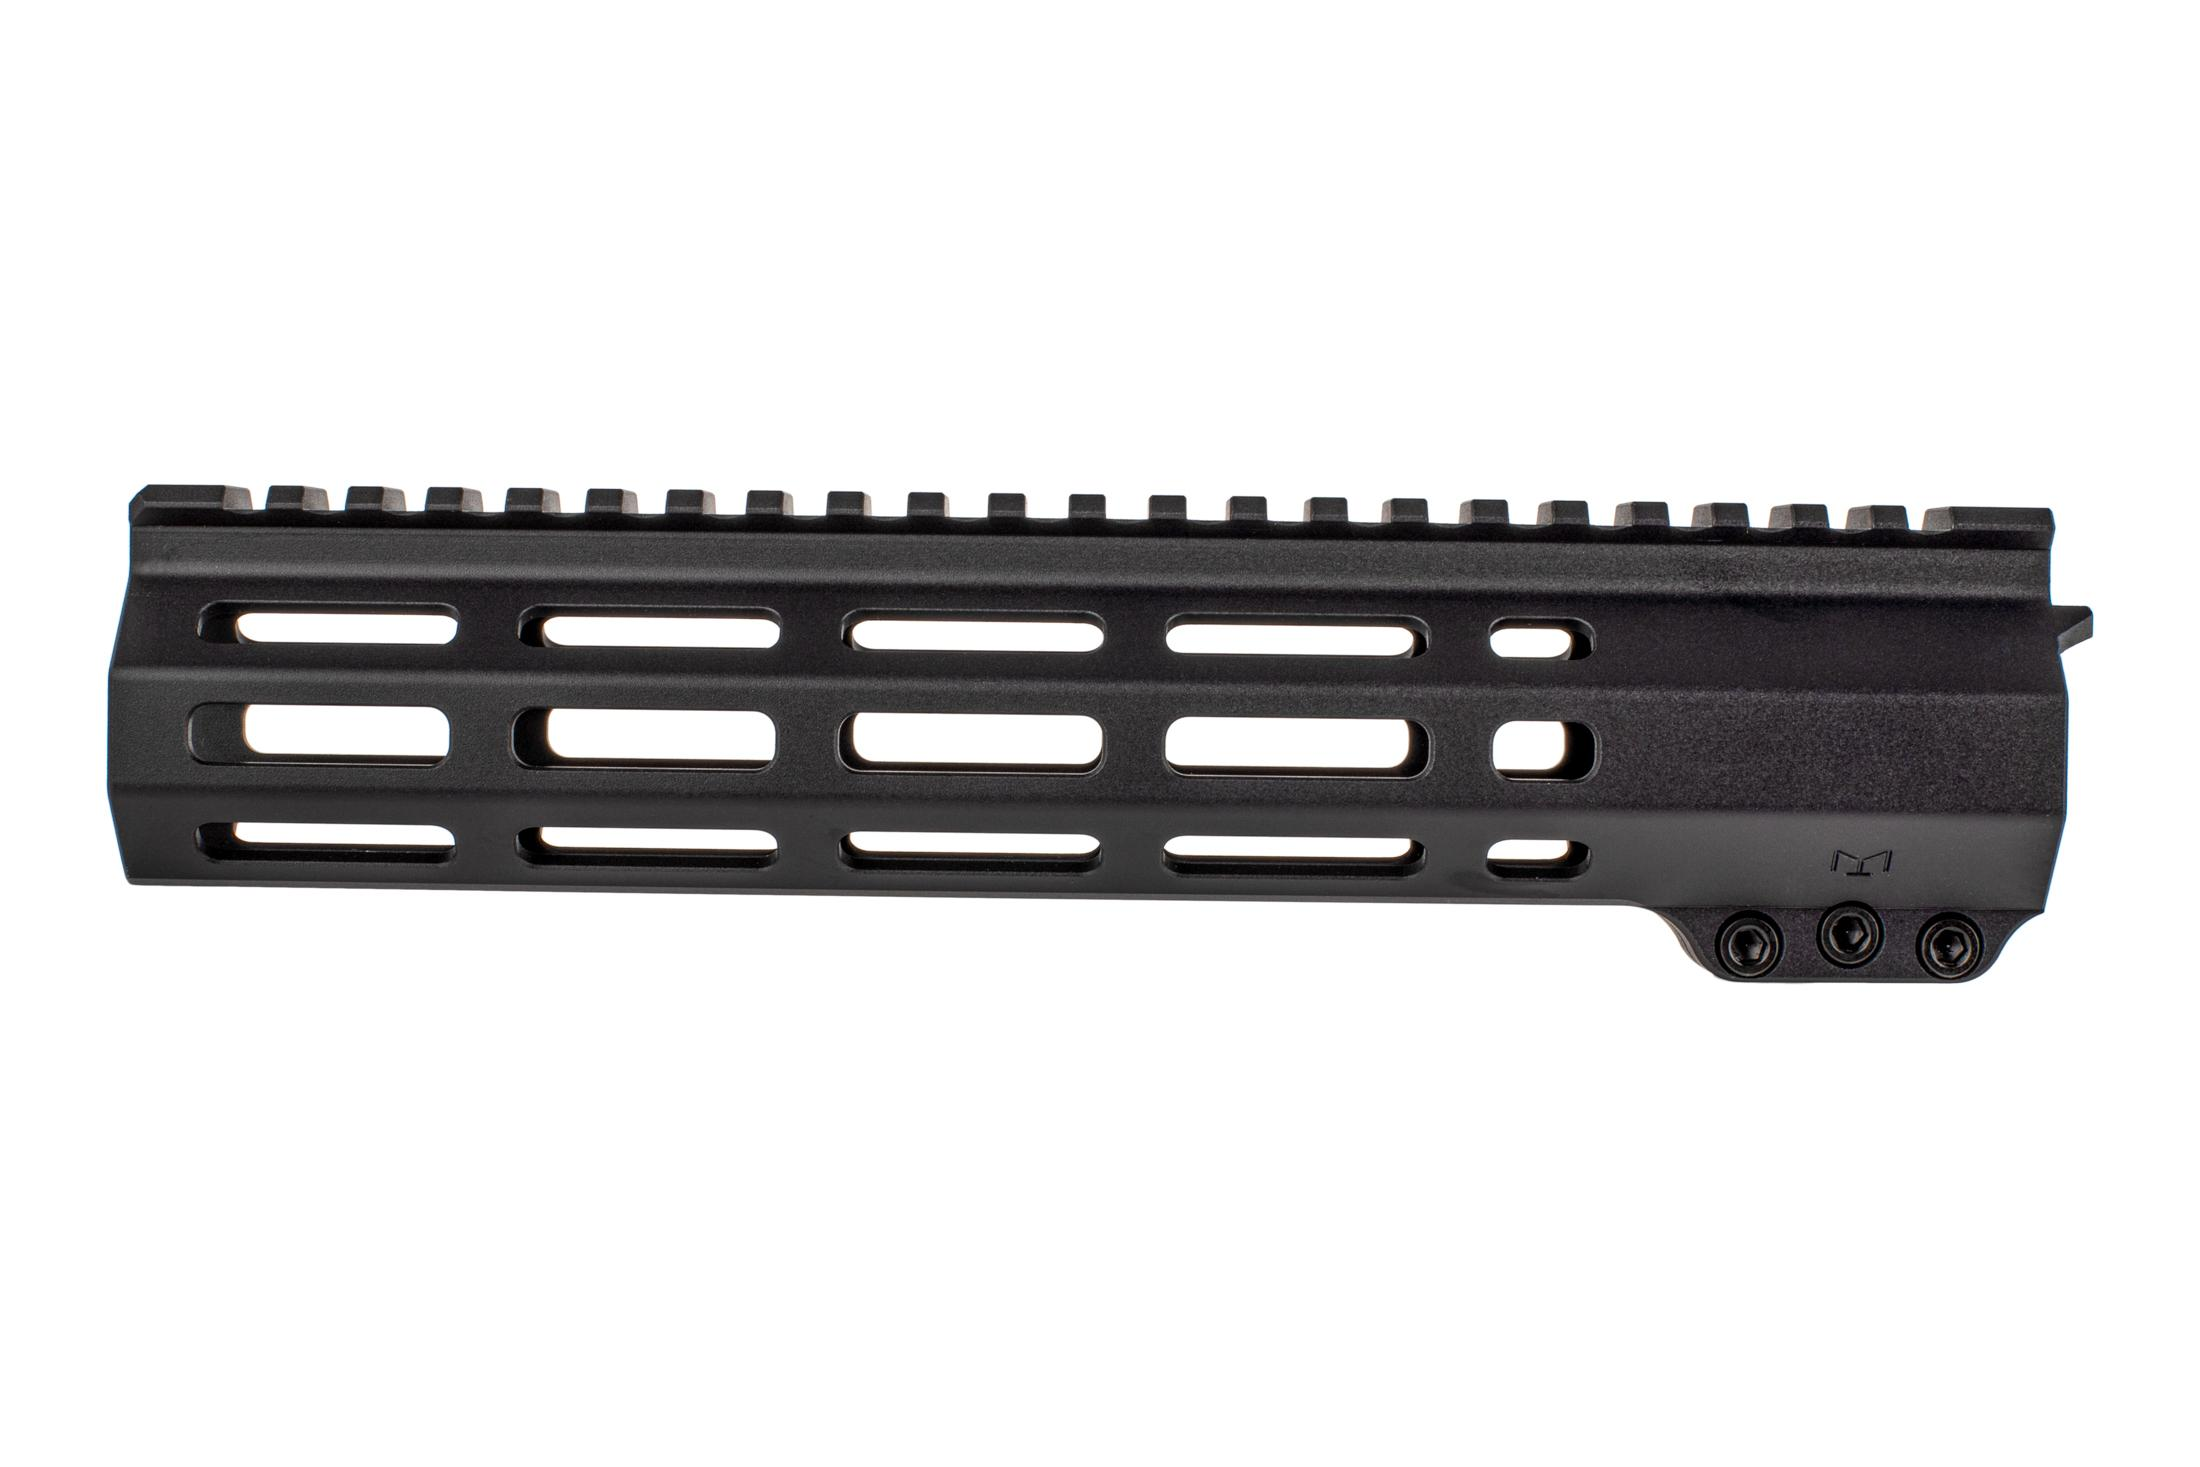 EXPO Arms black anodized 9.5in E-series M-LOK handguard for the AR-15 is free floated and lightweight rail system.